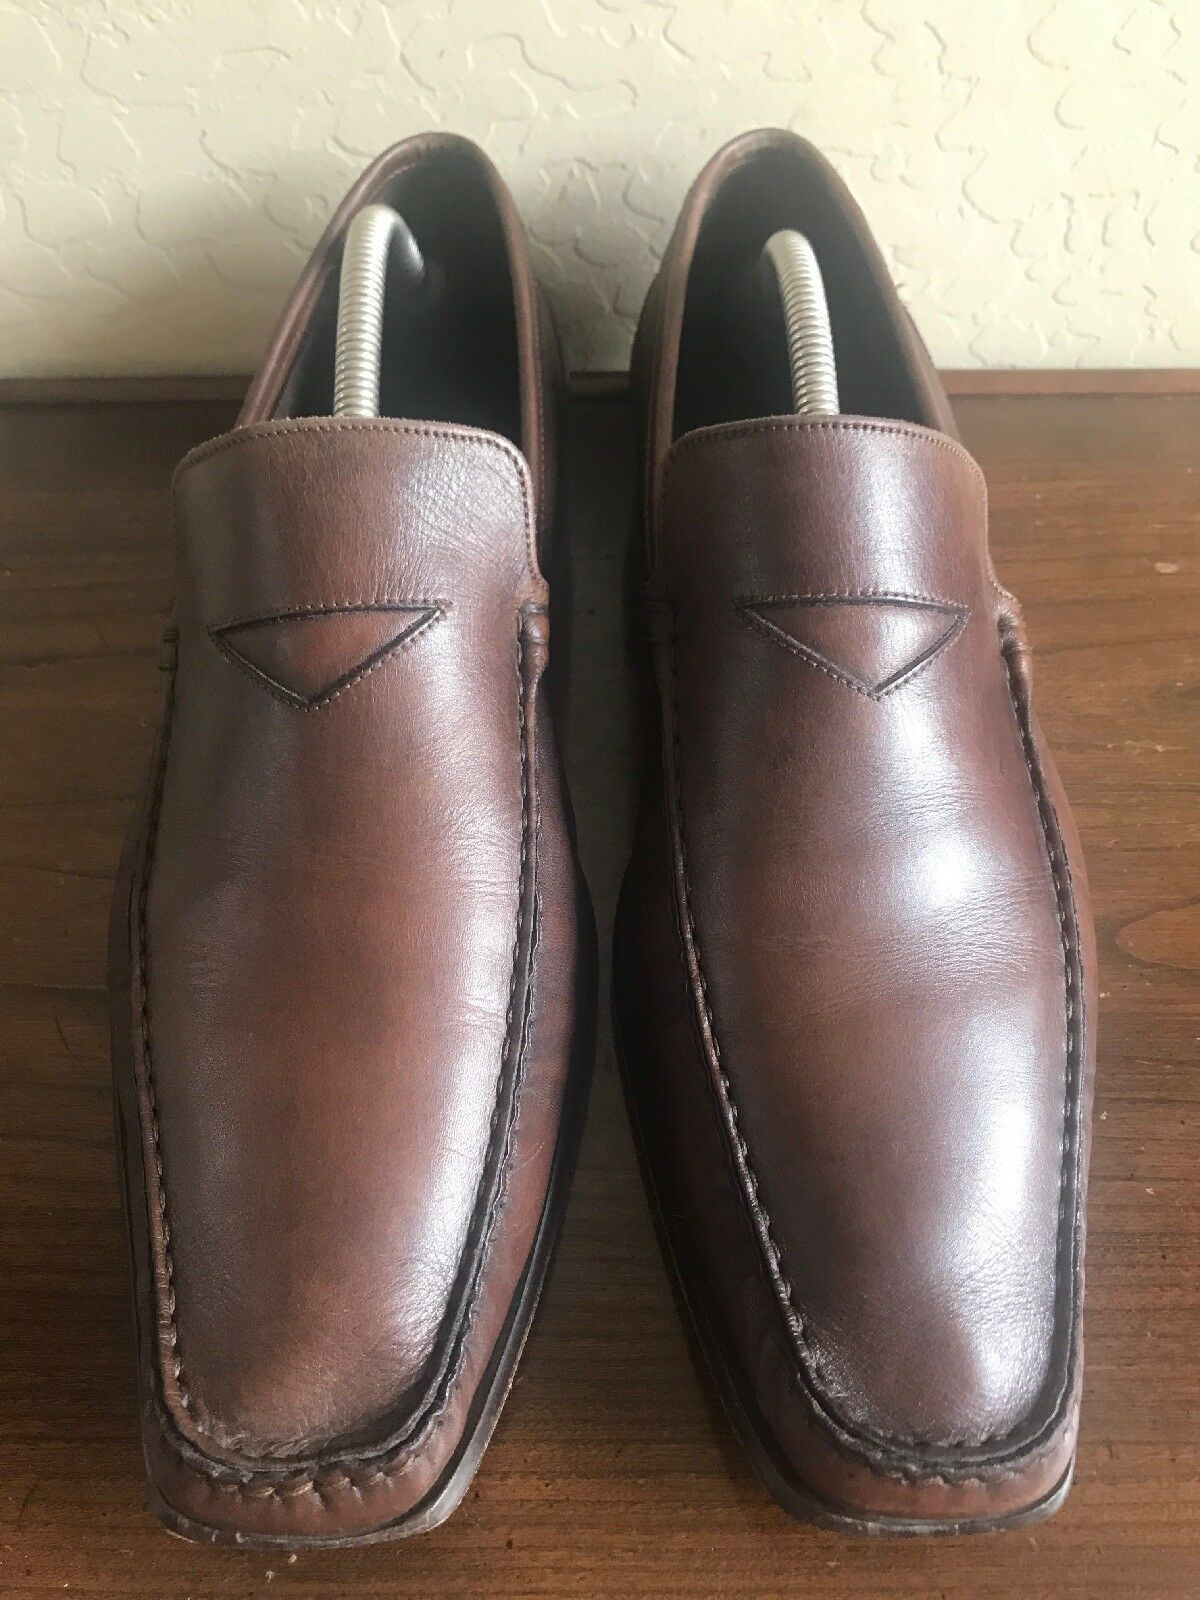 To Boot New York By Adam Derrick 9131 Men's Loafers Sz 11 Brown Leather Slip Ons